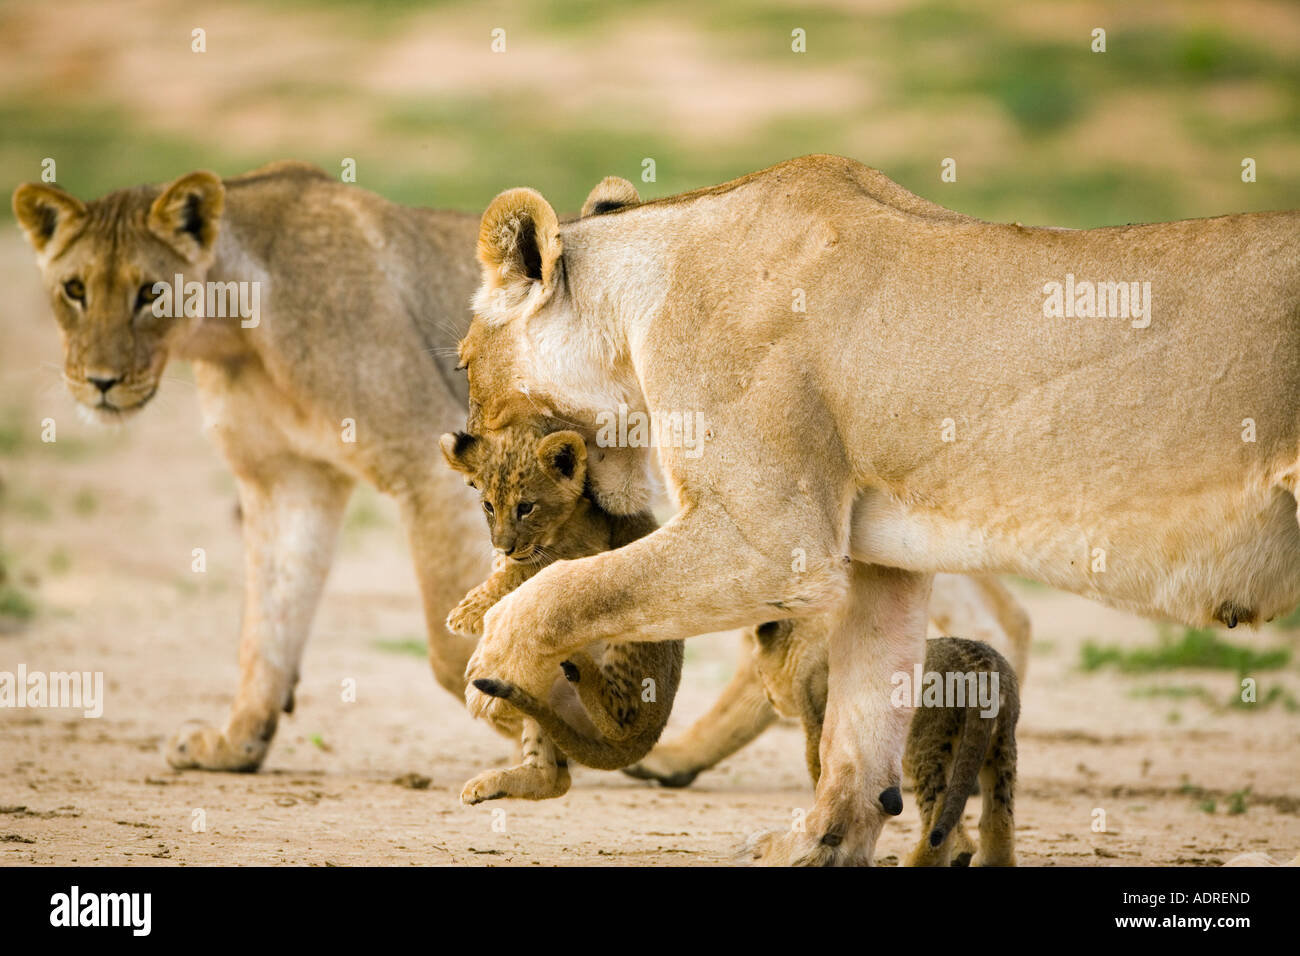 lioness with young cub - Stock Image